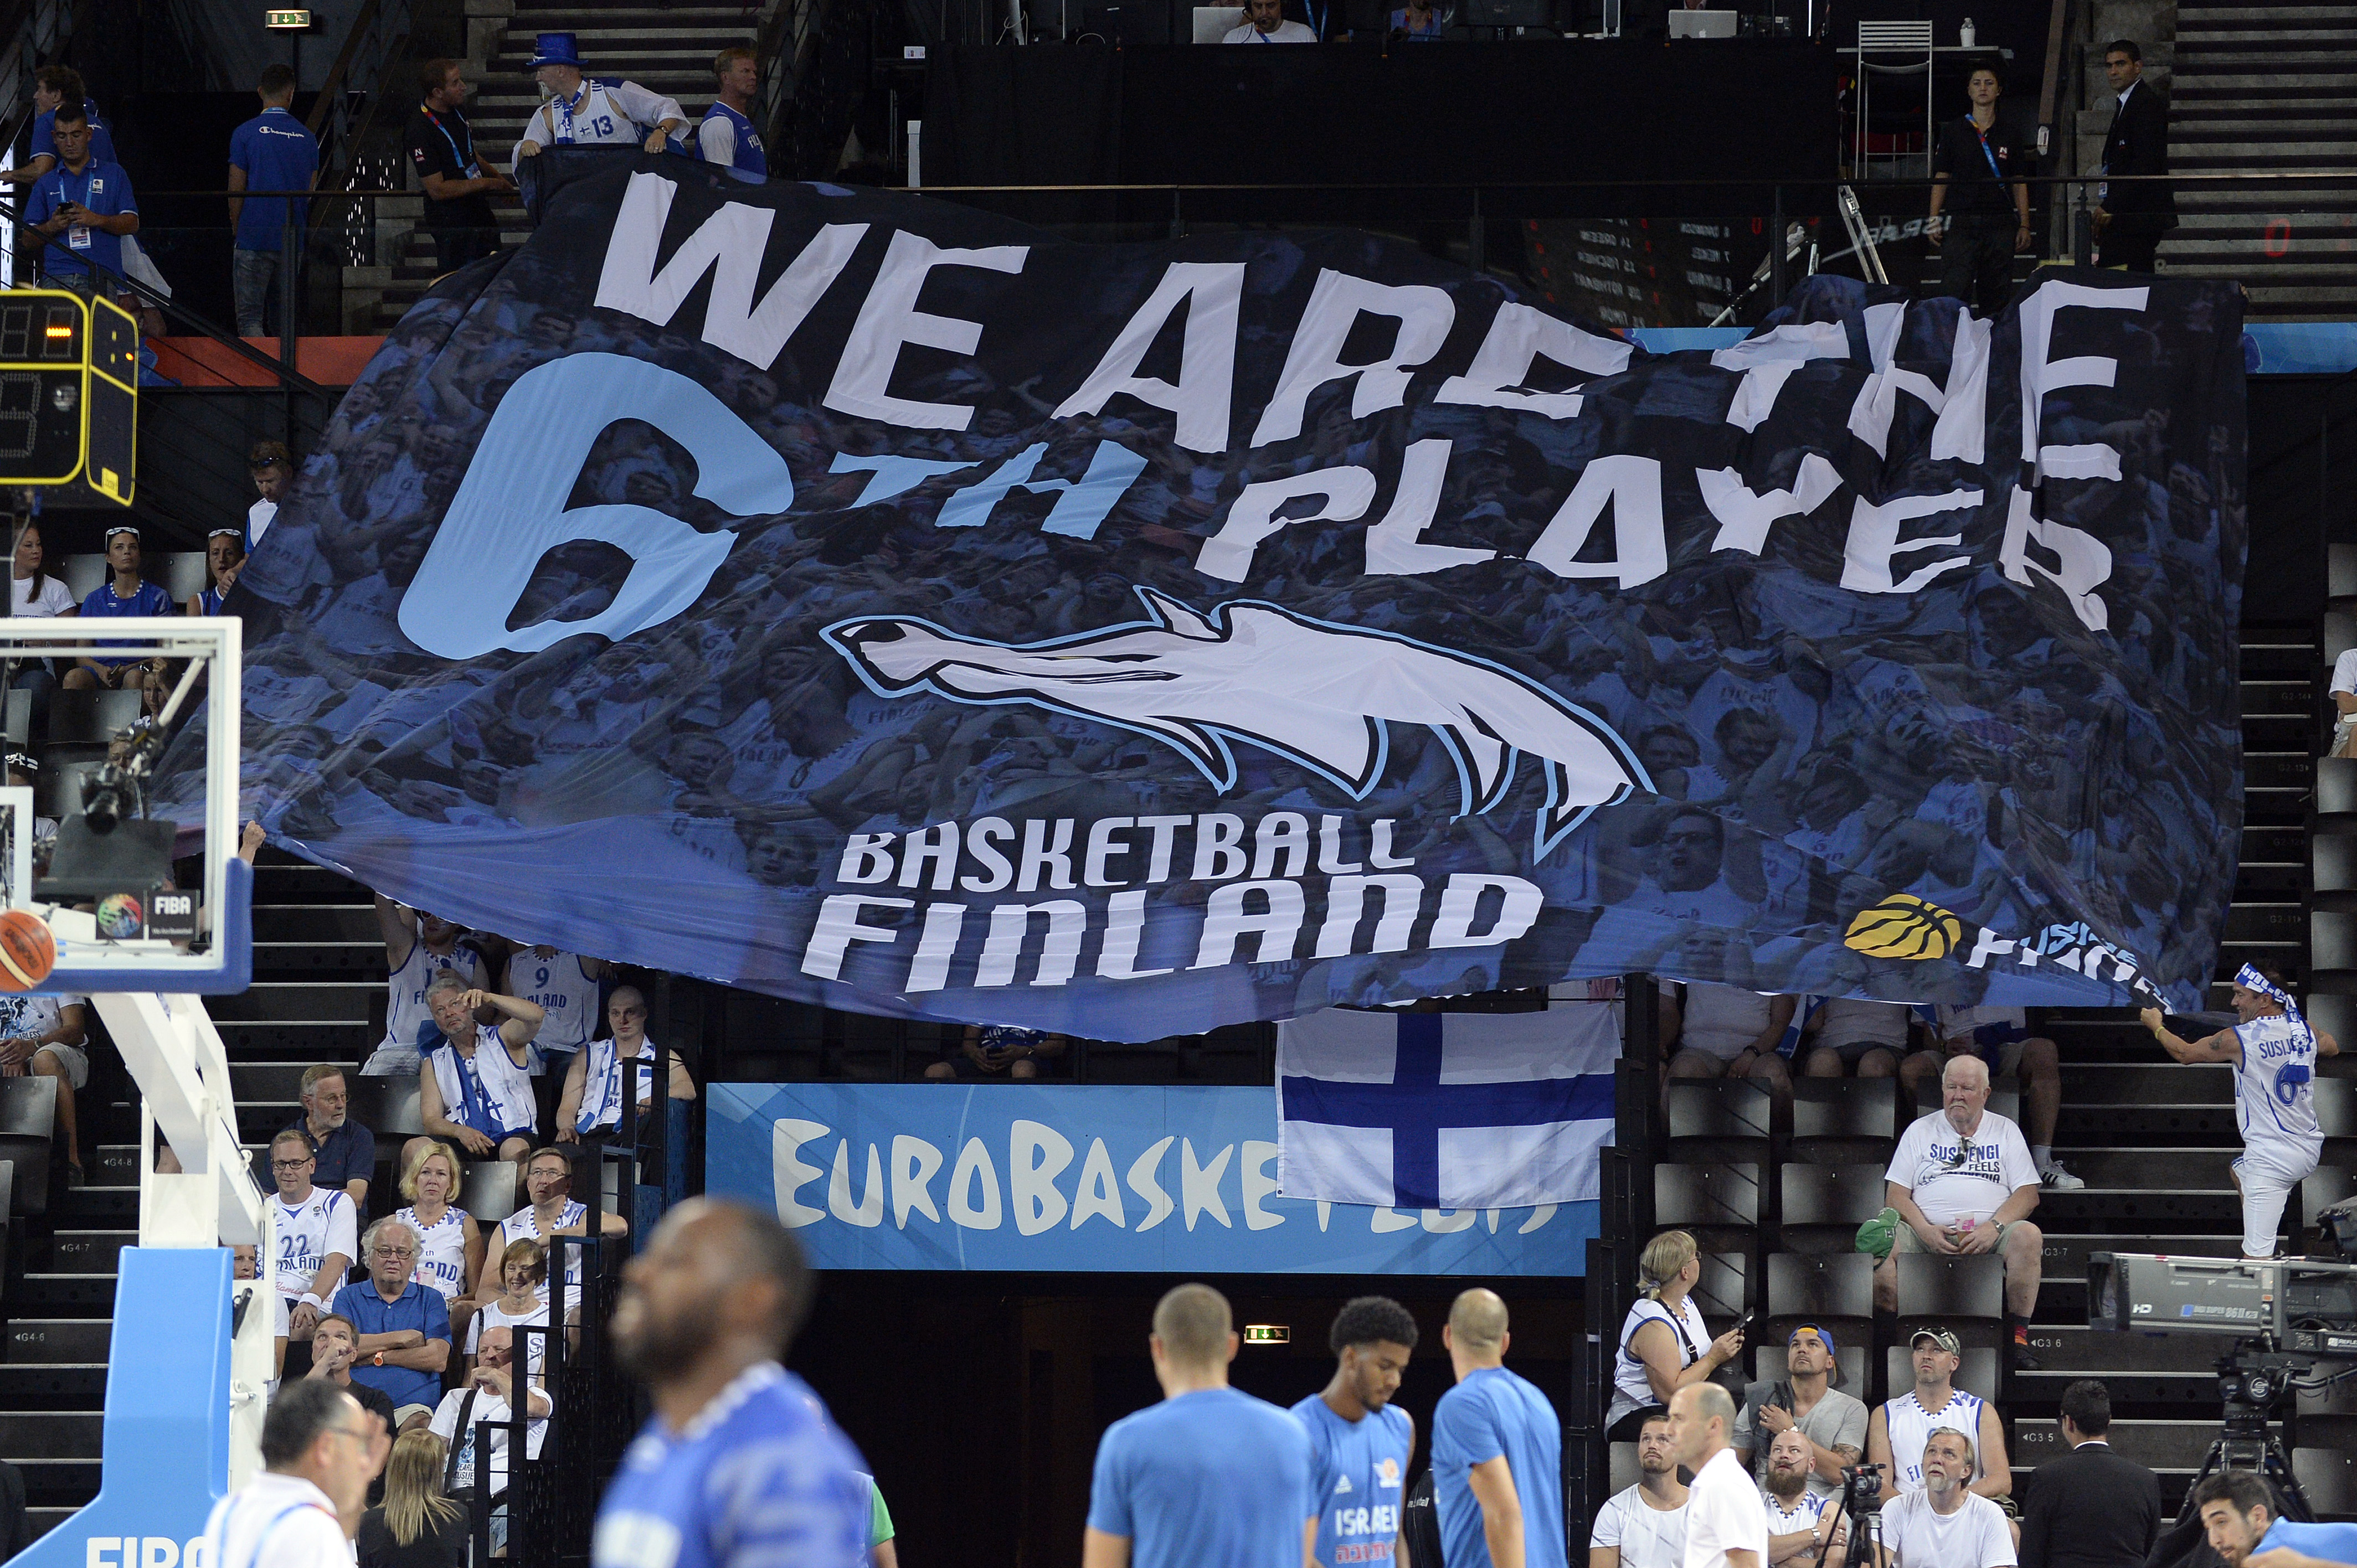 Stories from the #OfficialCourt of EuroBasket 2015: Montpellier